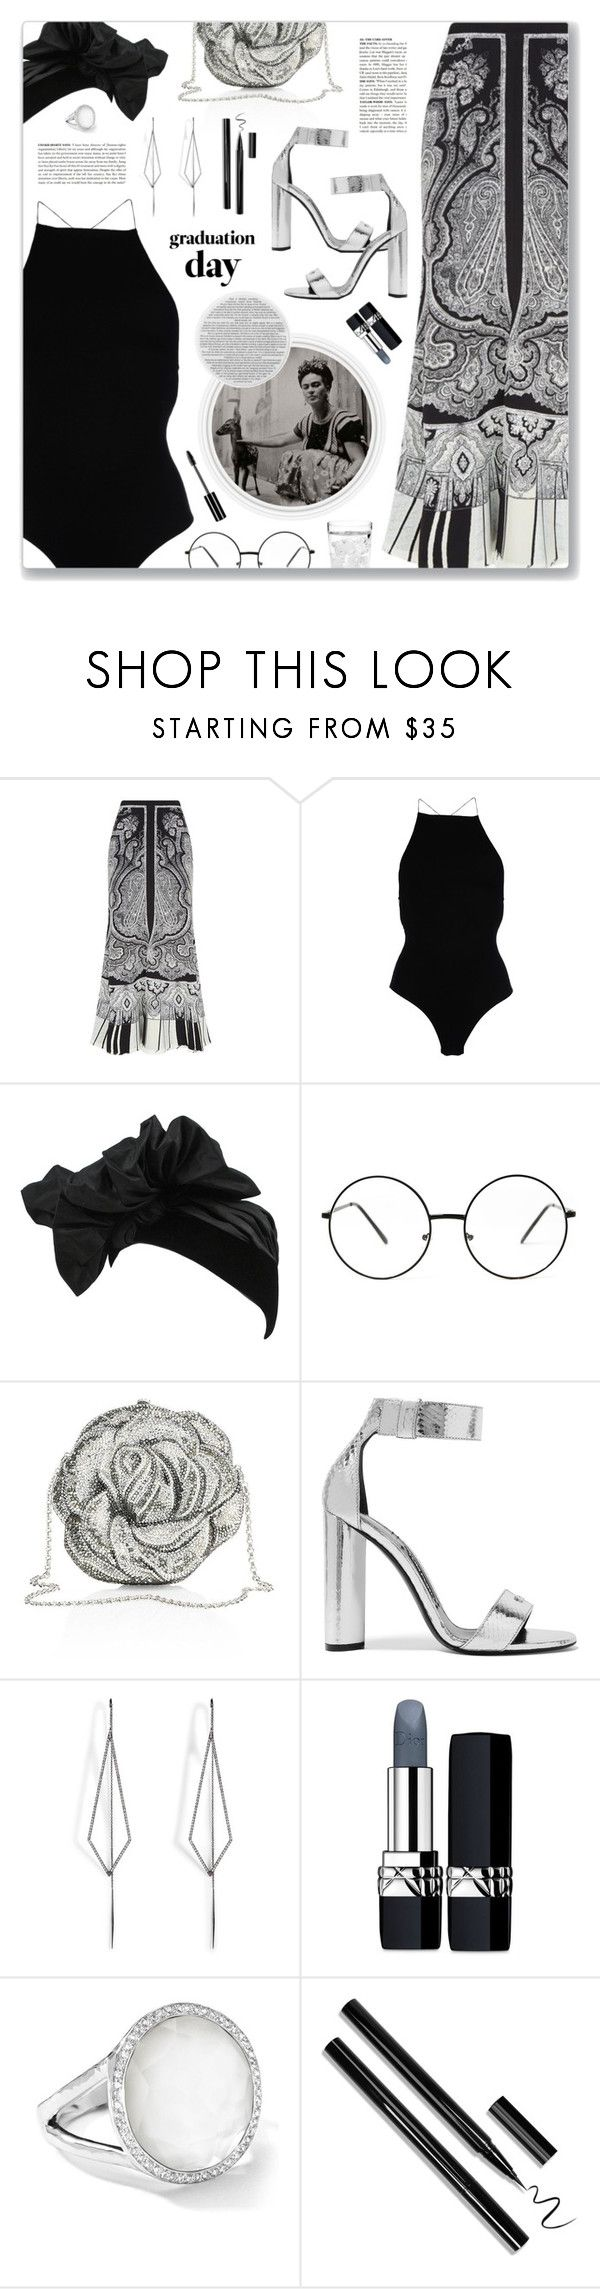 """Tranquilo (feat. Bad Bunny), Kevin Roldan"" by blendasantos ❤ liked on Polyvore featuring Alexander McQueen, FRIDA, T By Alexander Wang, Yves Saint Laurent, Judith Leiber, McGinn, Tom Ford, Diane Kordas, Christian Dior and Ippolita"